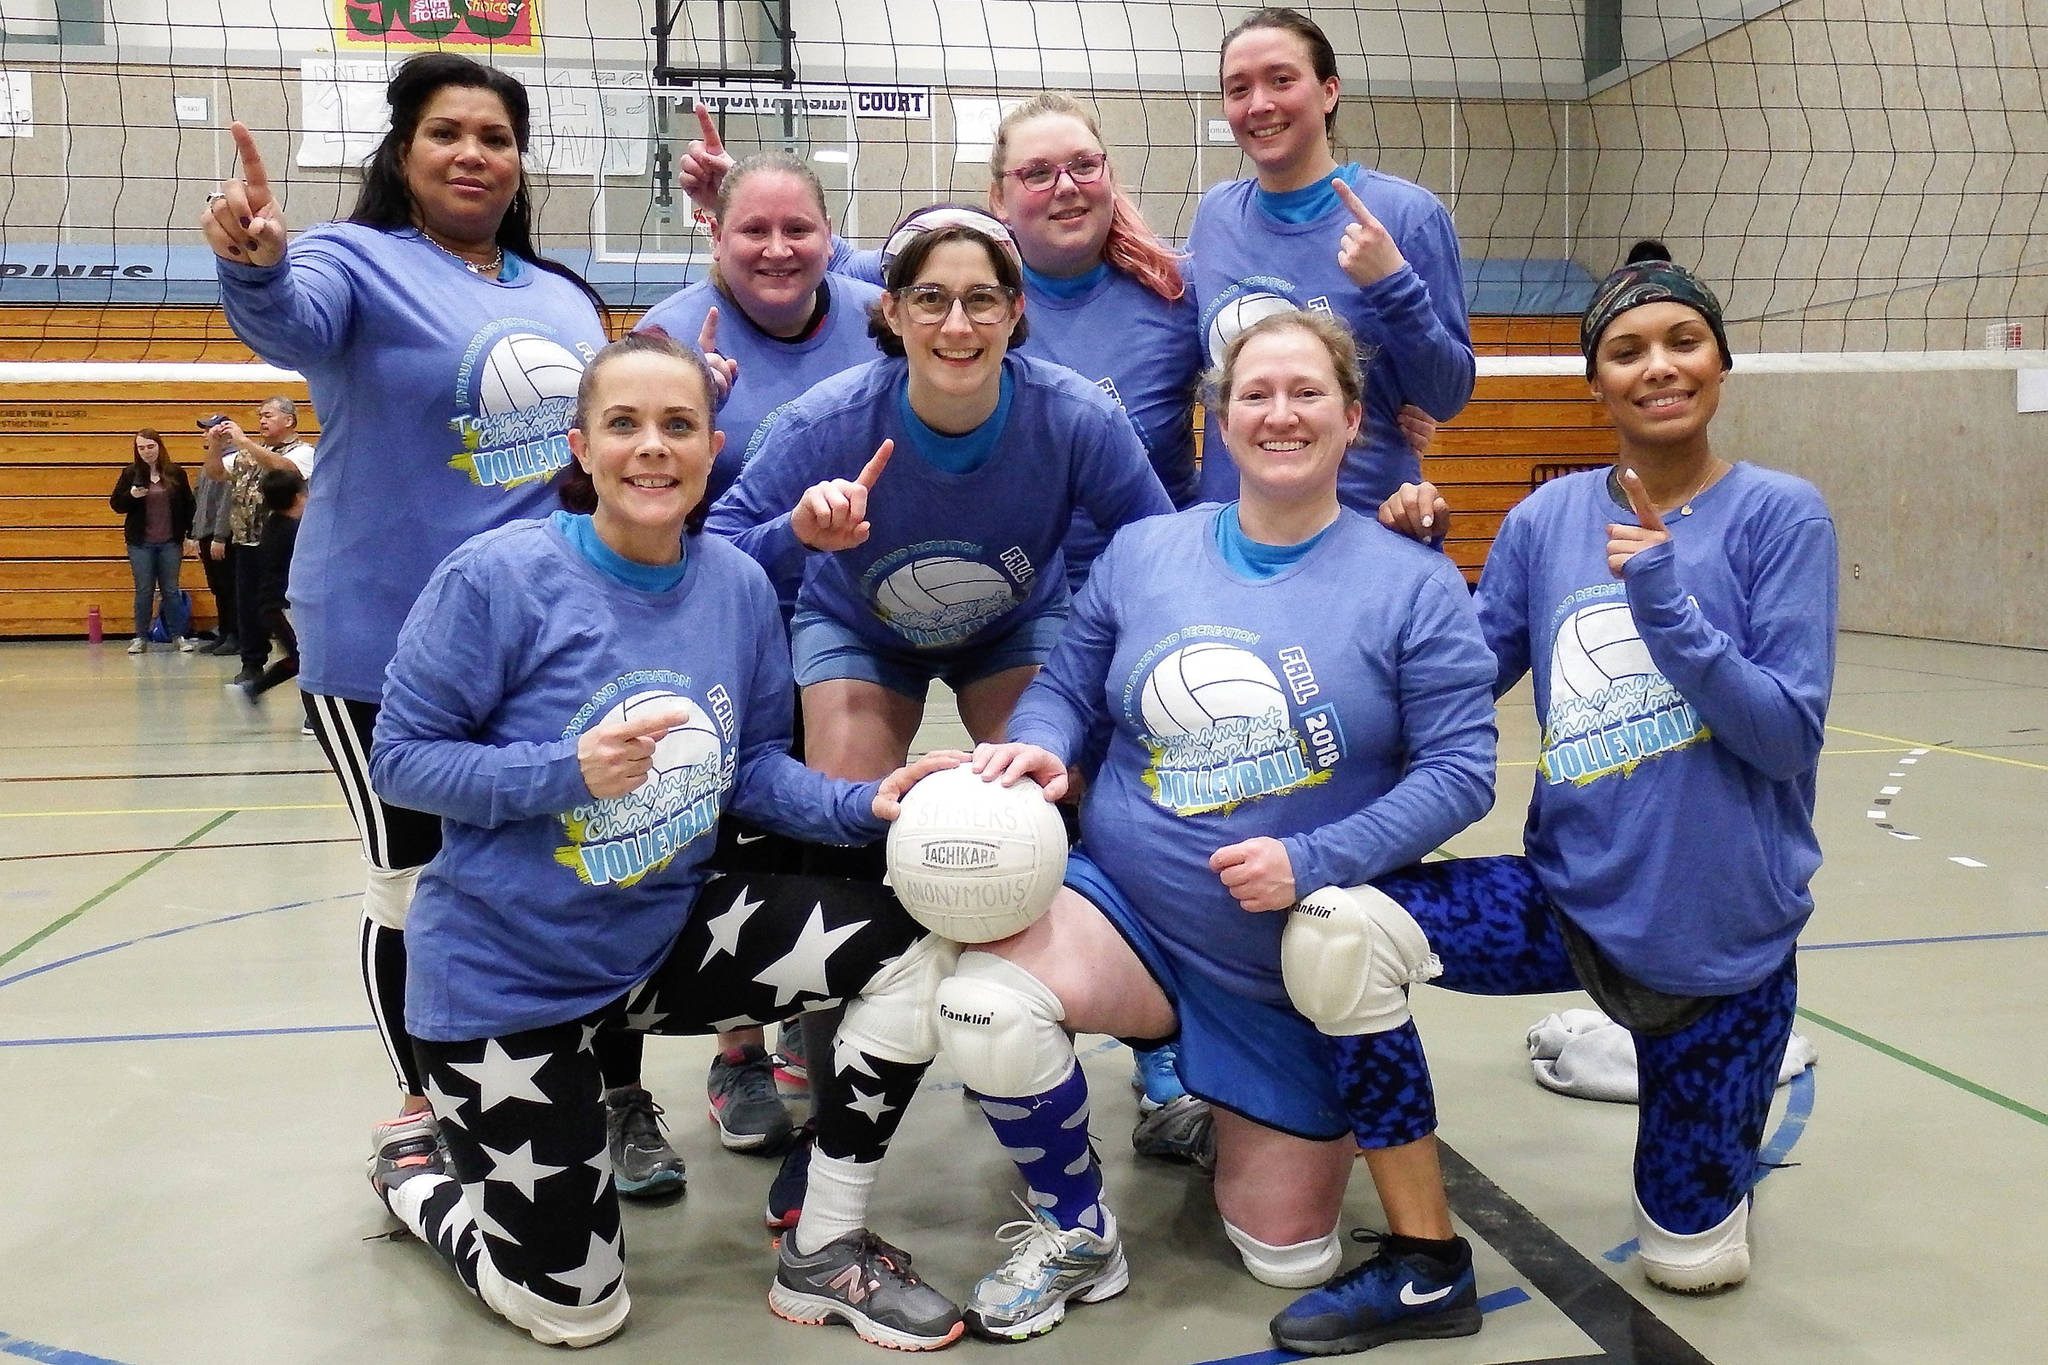 The Juneau Parks and Recreation Women's Division 3 South Champions: The Freudian Slips. (Couresy Photo | Parks and Recreation)